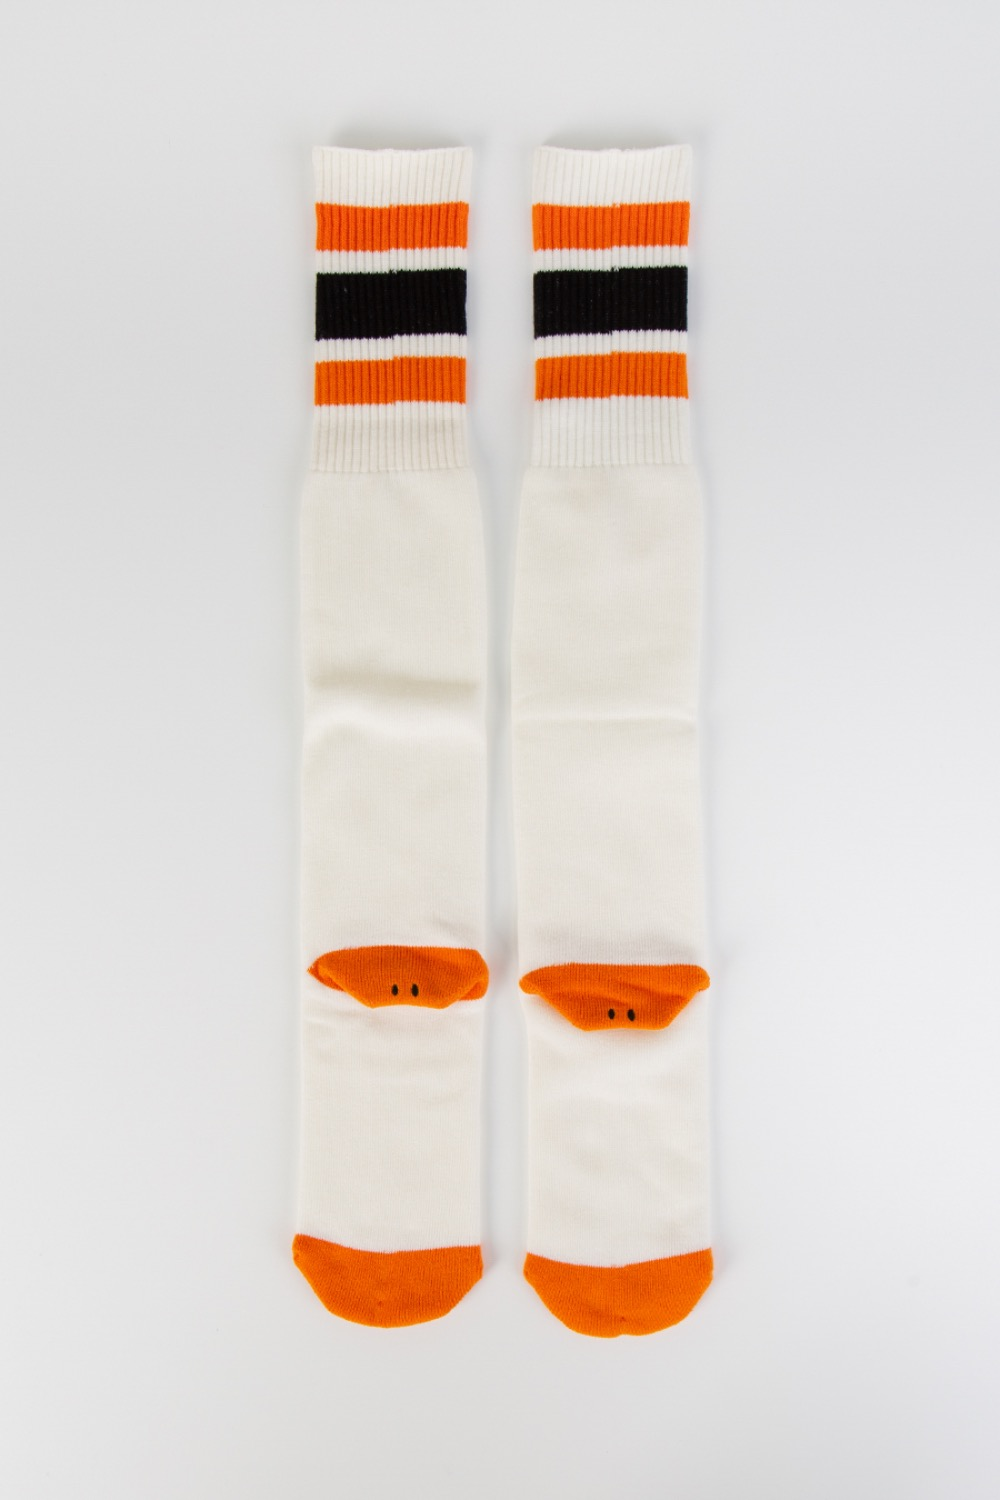 144 YARNS HEEL SMILIE EMBROIDERED SKATERS KNEE HIGH WHITE/ORANGE